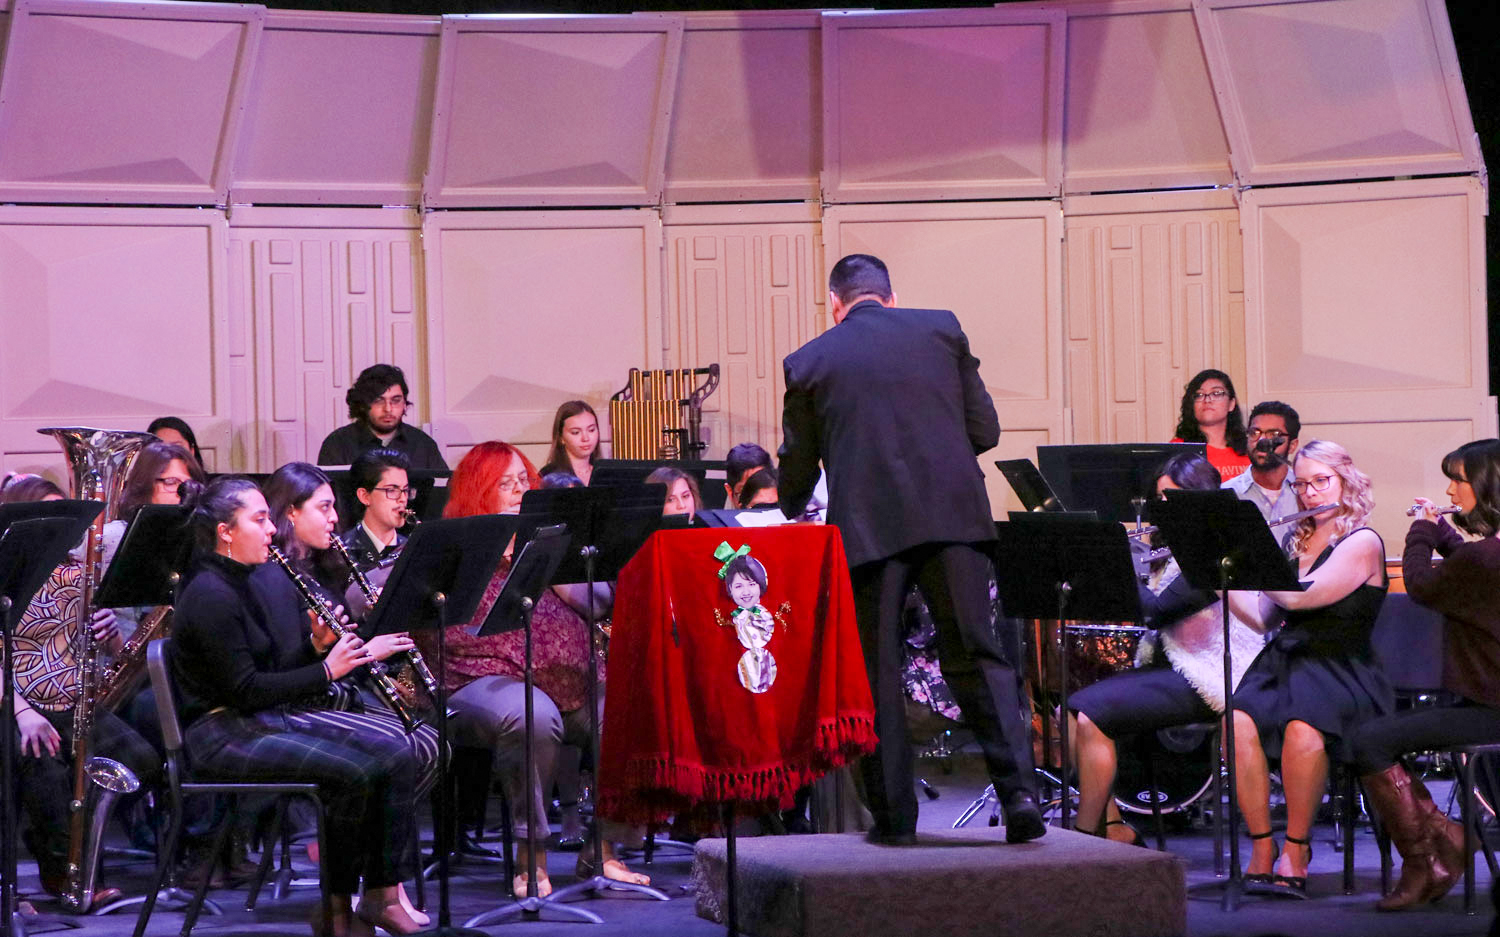 On Dec. 6, the concert band and concert choir put on a show for the community and students to attend in the SCCC showcase theater. The show included Christmas songs which were works in progress from the beginning of the semester.